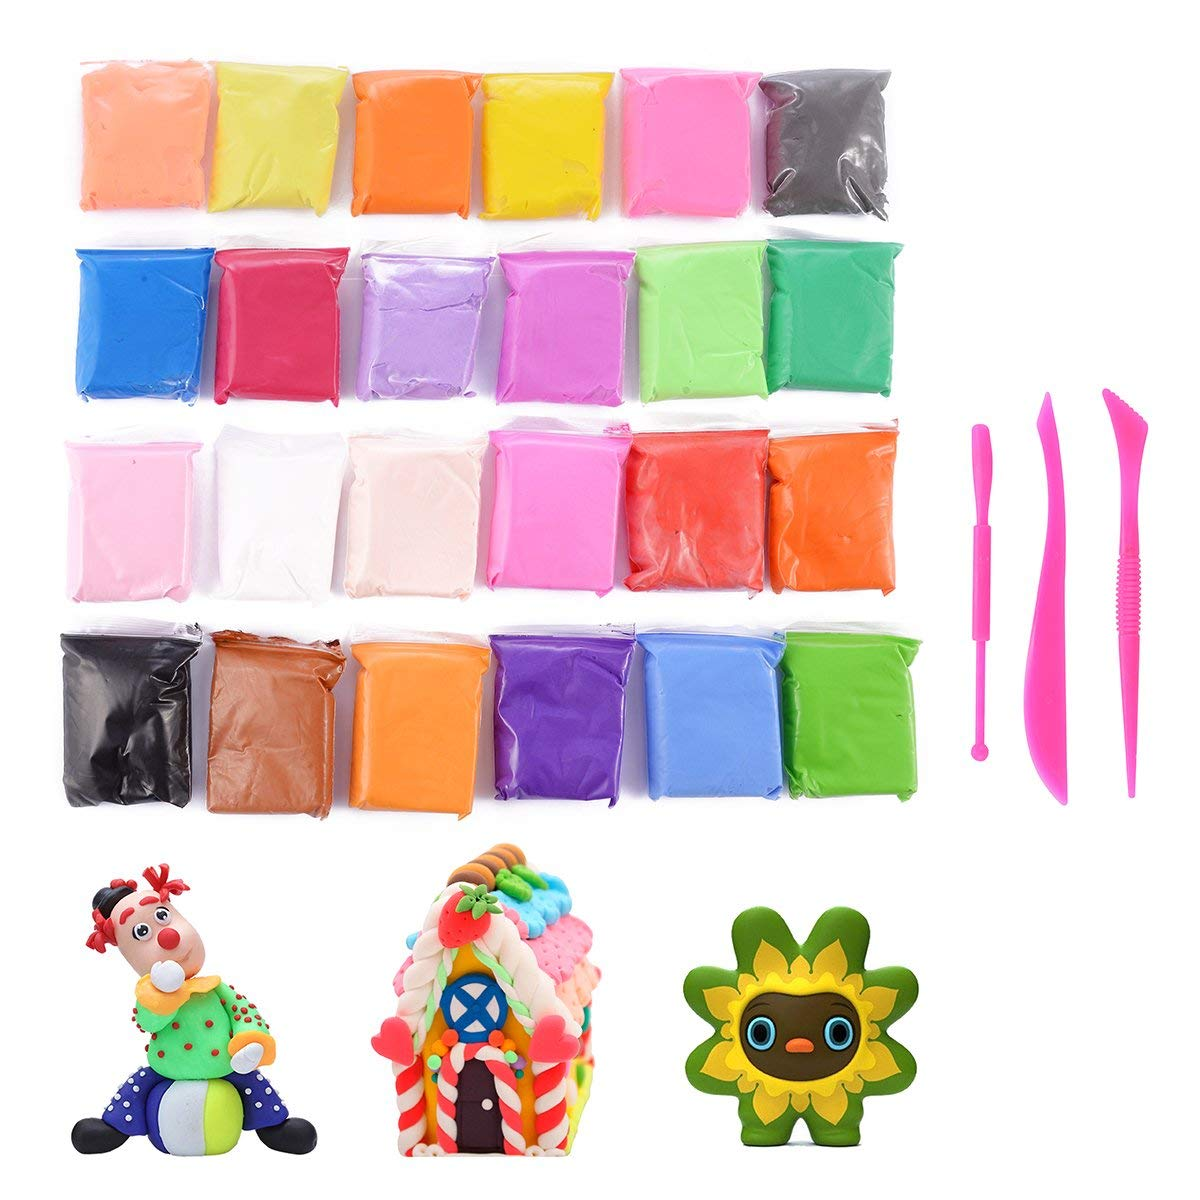 Air Dry Clay with Modeling Clay Tools, 24 PCS Bright Colors Kids Ultra Light Modeling Clay Magic Artist Studio Toy , No-Toxic Modeling Clay & Dough, Creative Art DIY Crafts